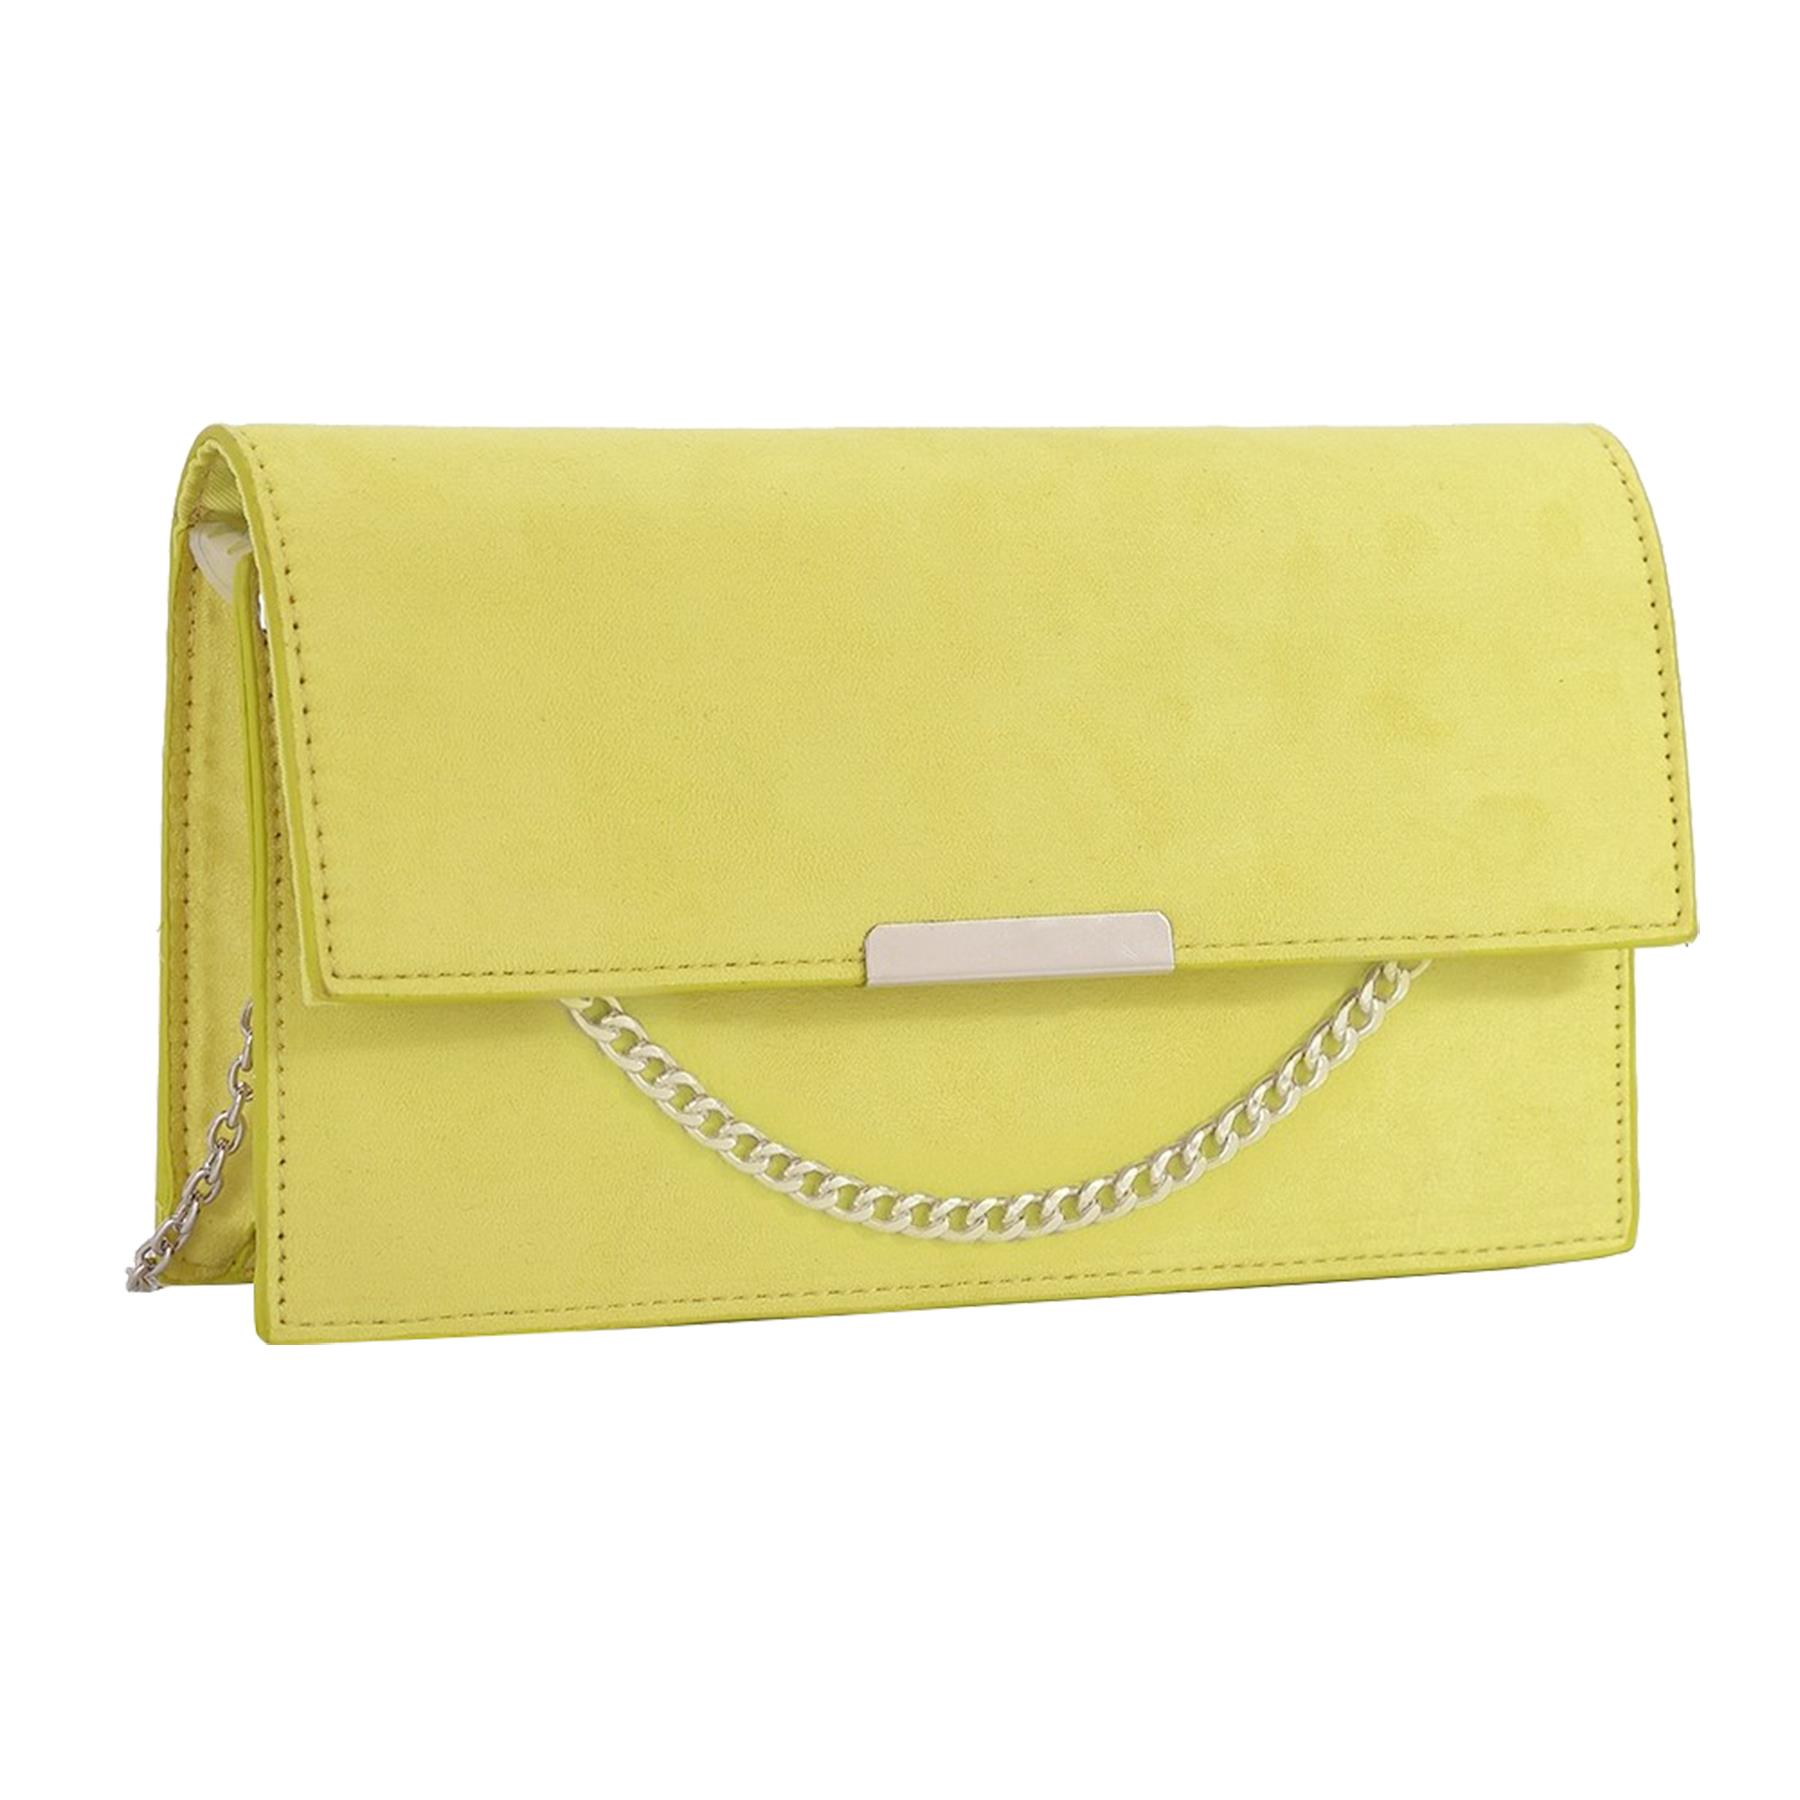 New-Synthetic-Suede-Metallic-Trim-Chain-Detail-Evening-Classic-Clutch-Bag thumbnail 15